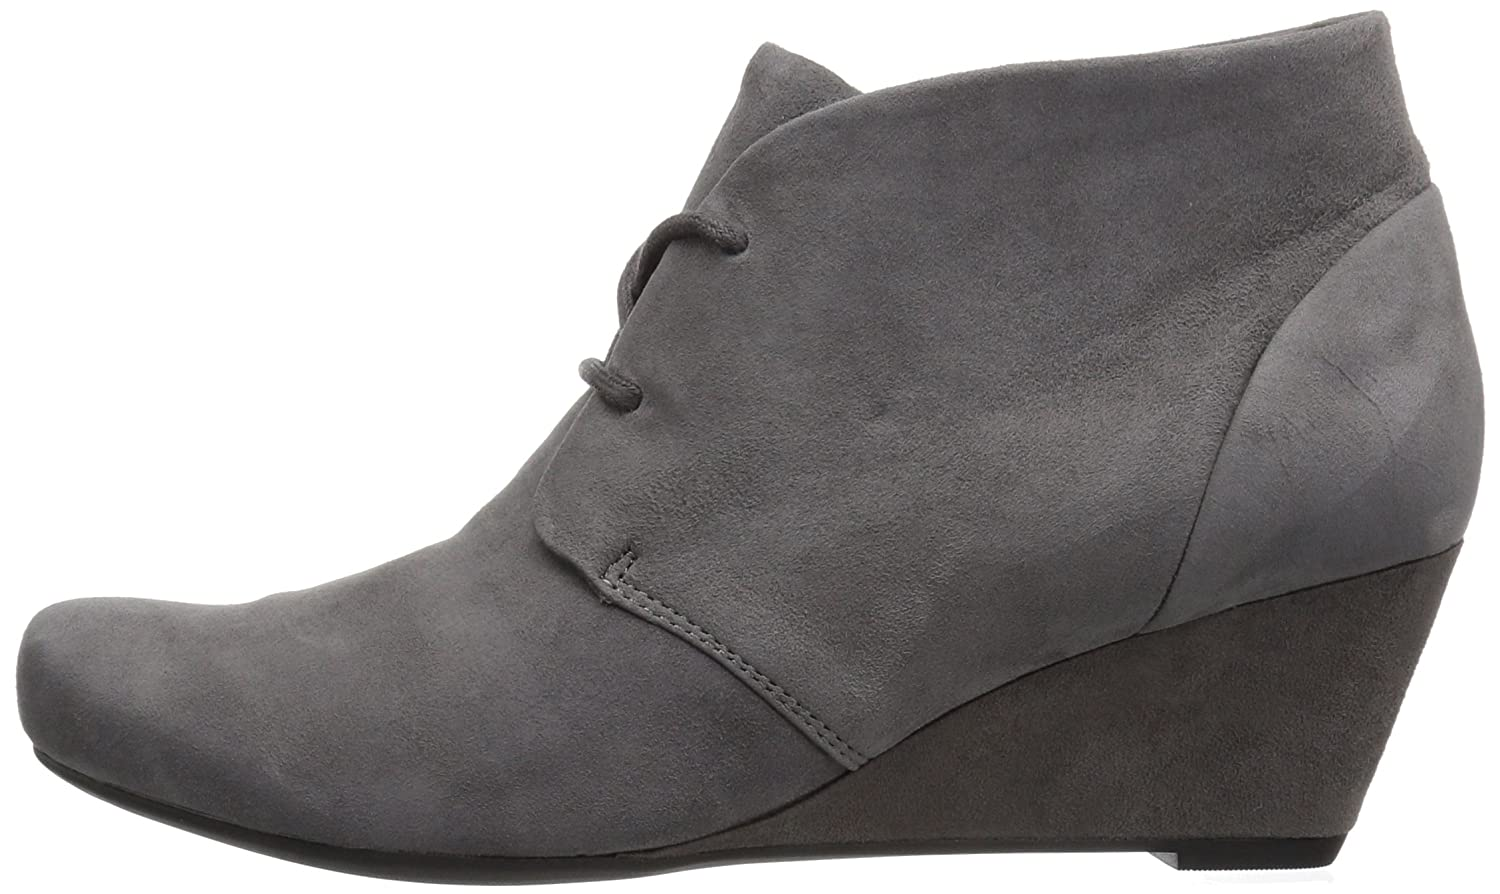 CLARKS Women's Flores Rose Ankle Bootie B01N5ESGBN 9 B(M) US|Grey Suede